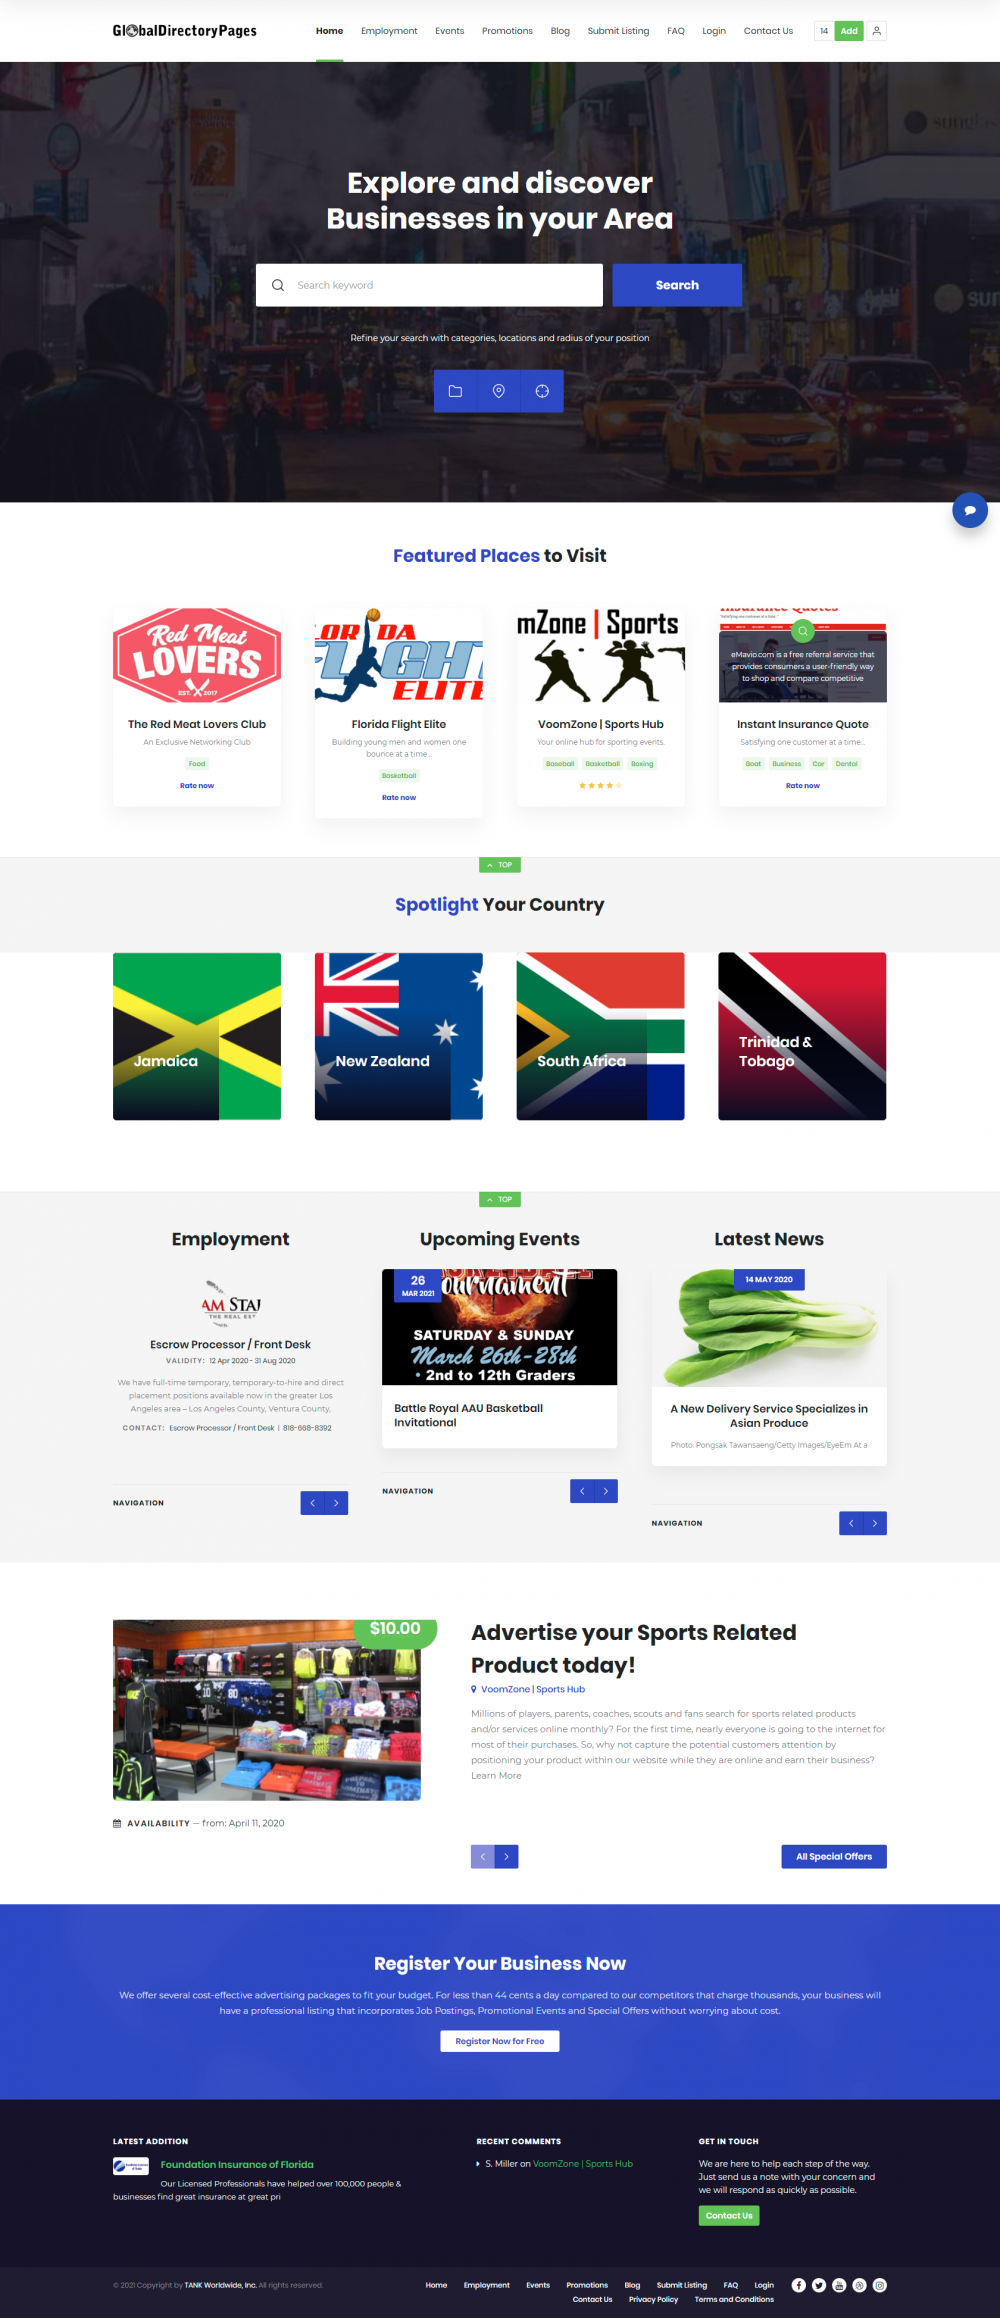 Global Directory Pages